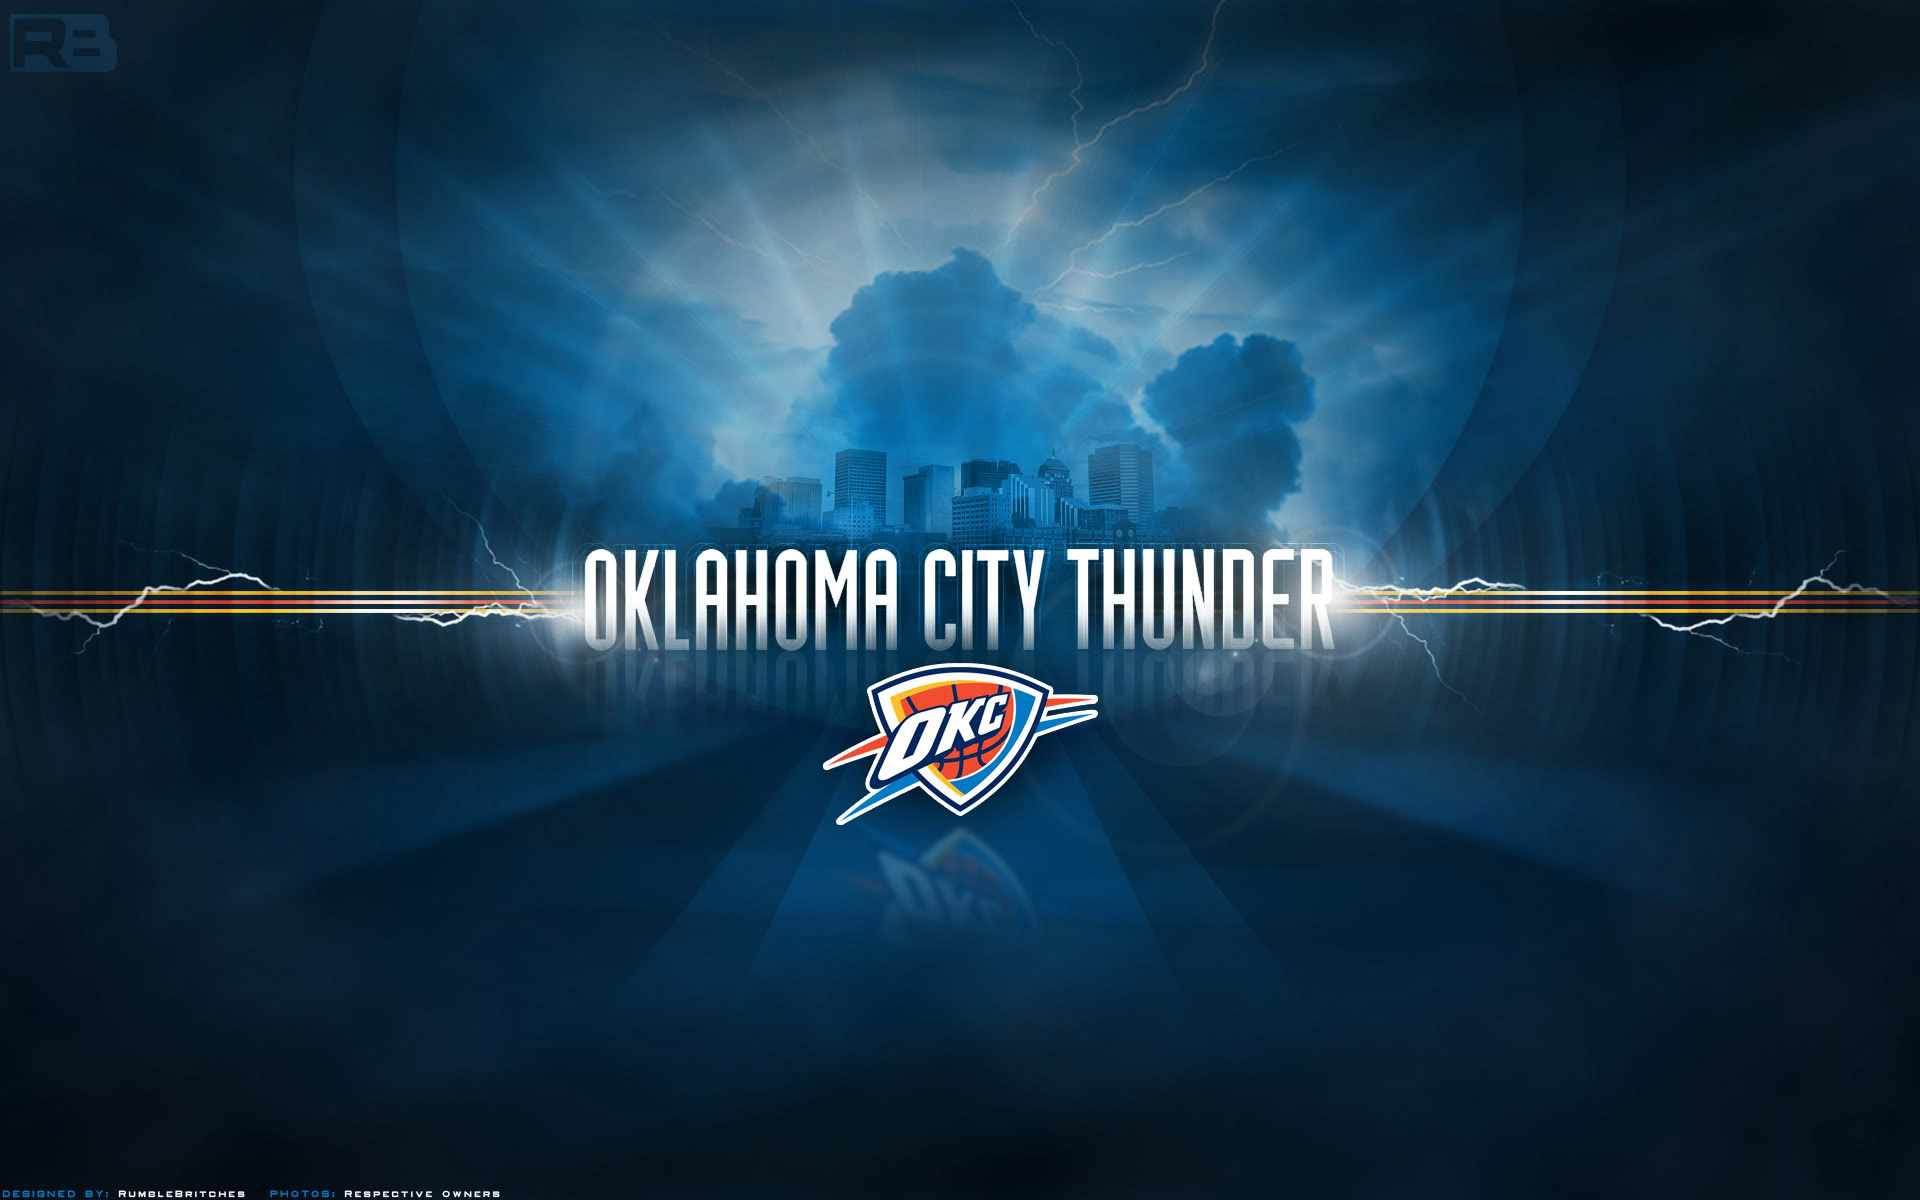 OKLAHOMA CITY THUNDER - Basketball Wallpapers